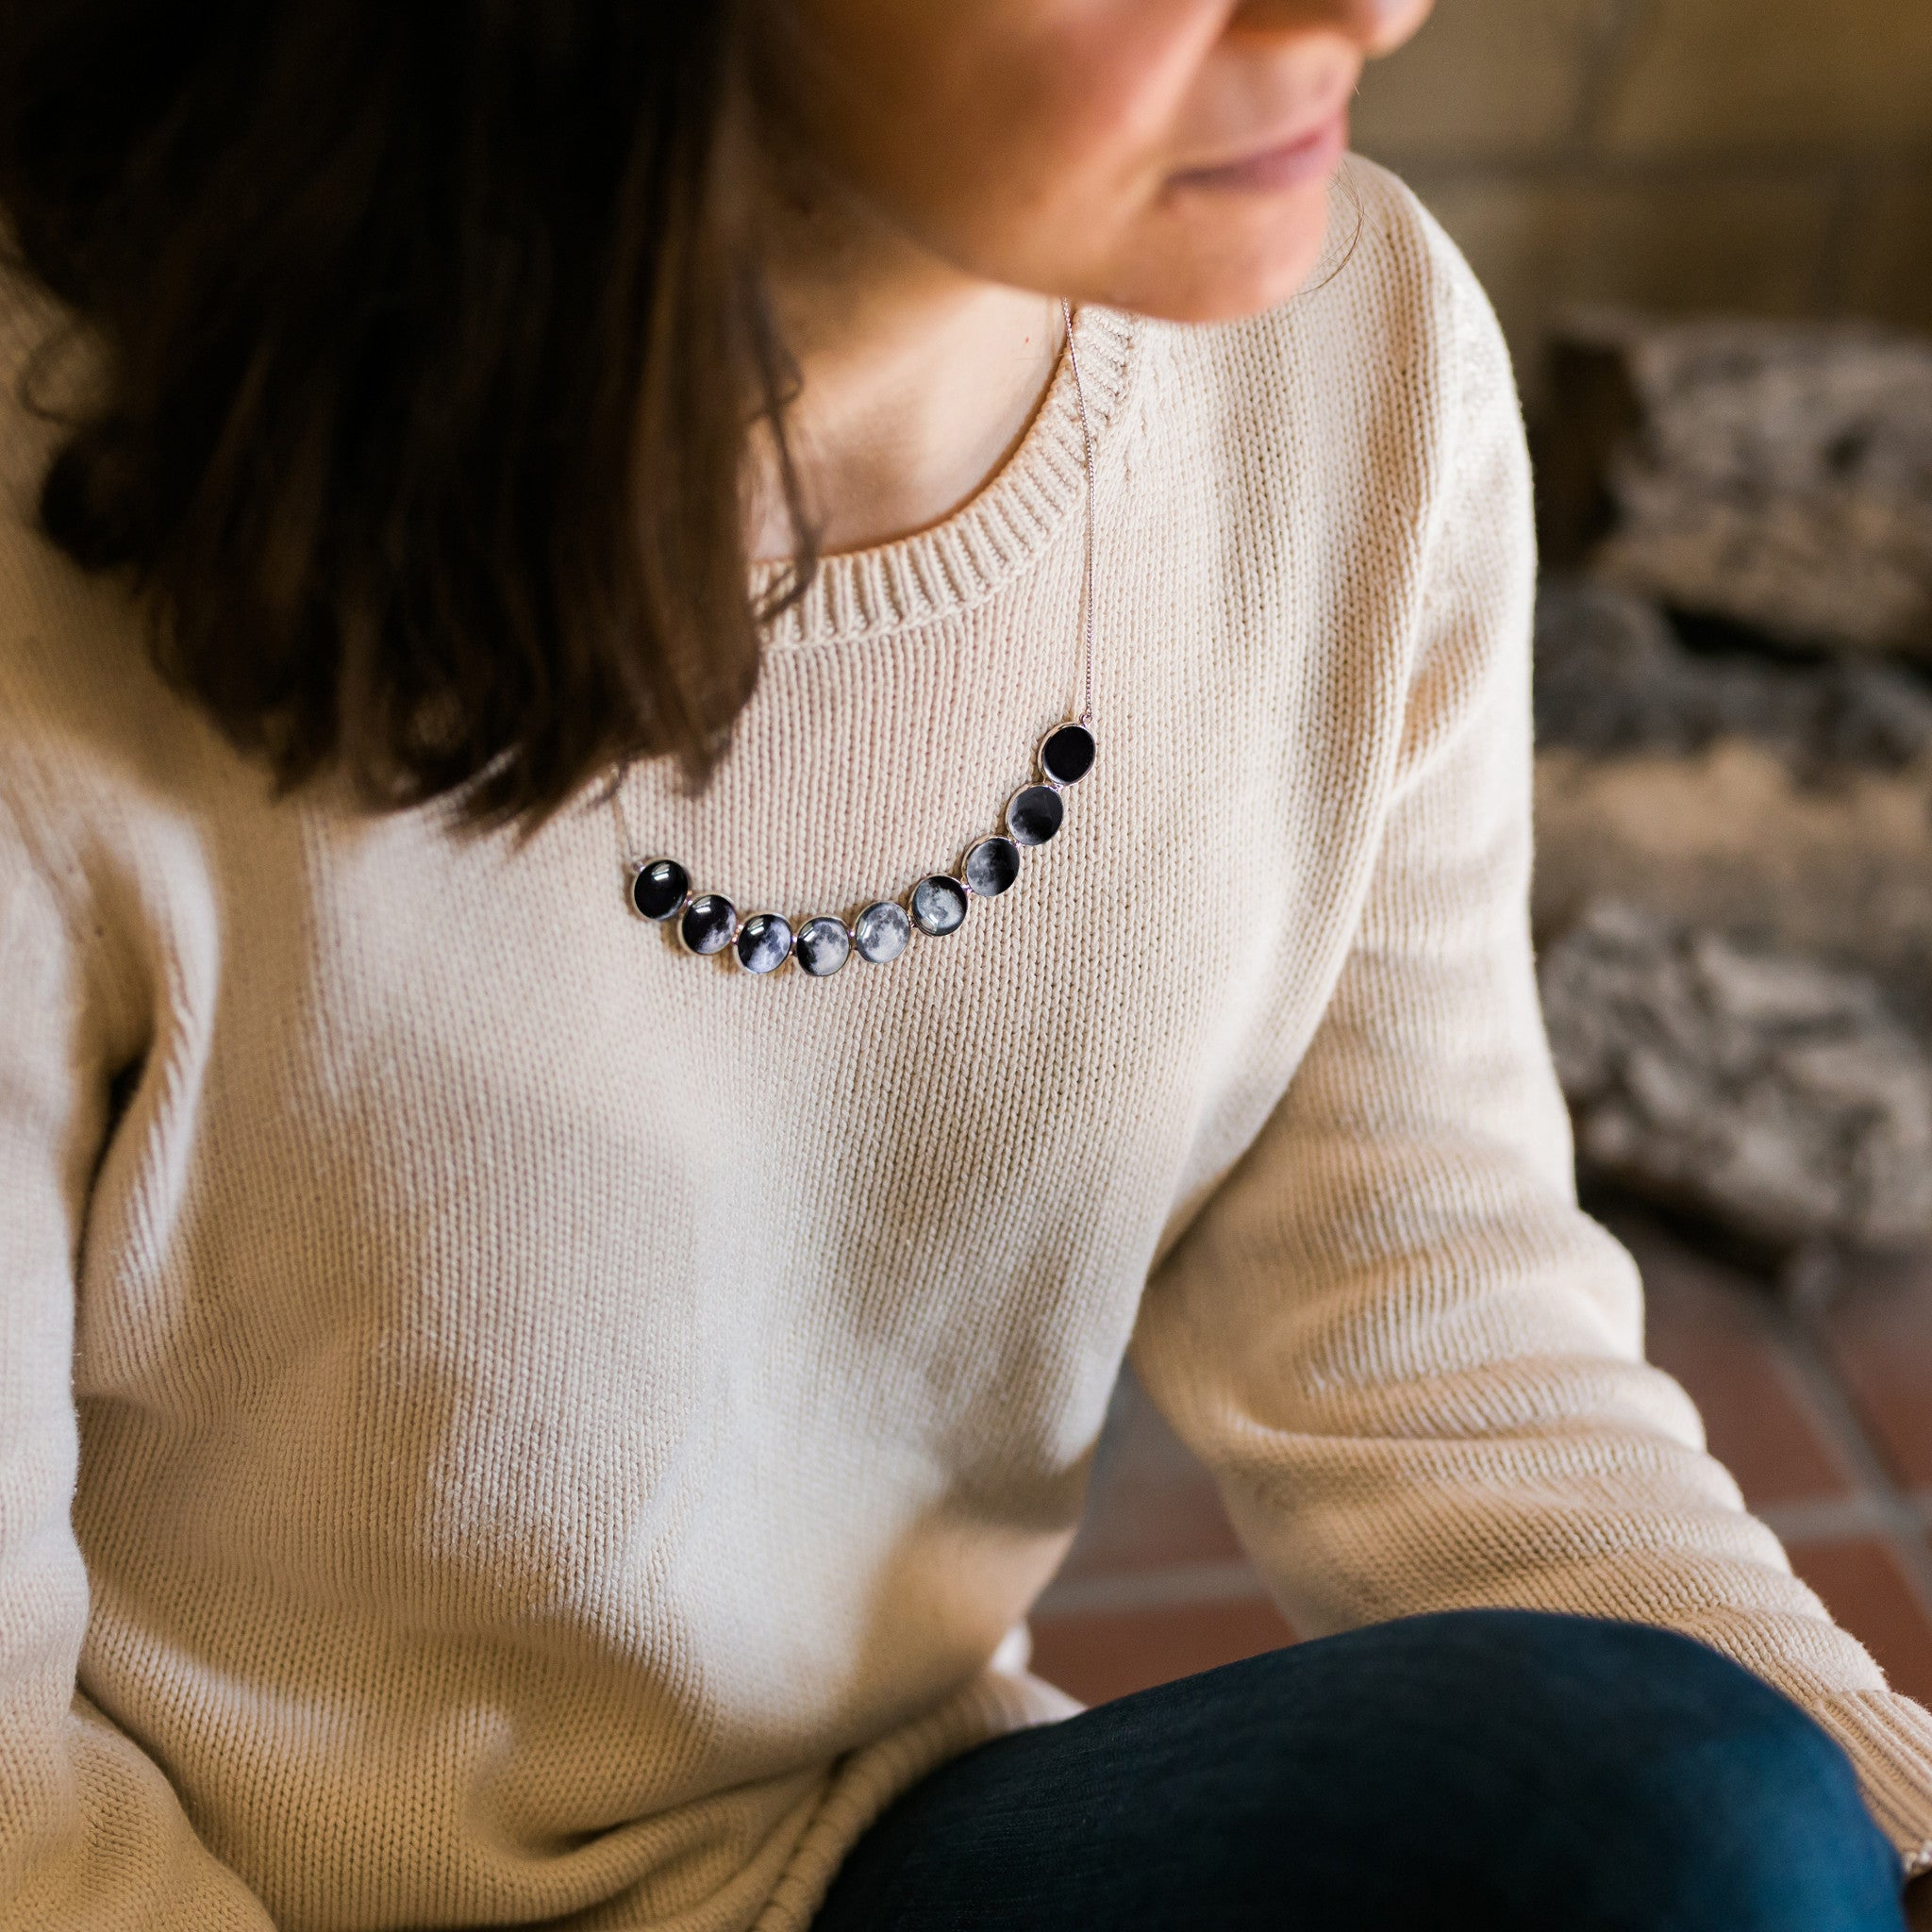 Curved moon phase necklace with 9 different lunar phases - Outer space new age luna jewellery - STEM fashion by Yugen Tribe - modeled by a woman in white sweater